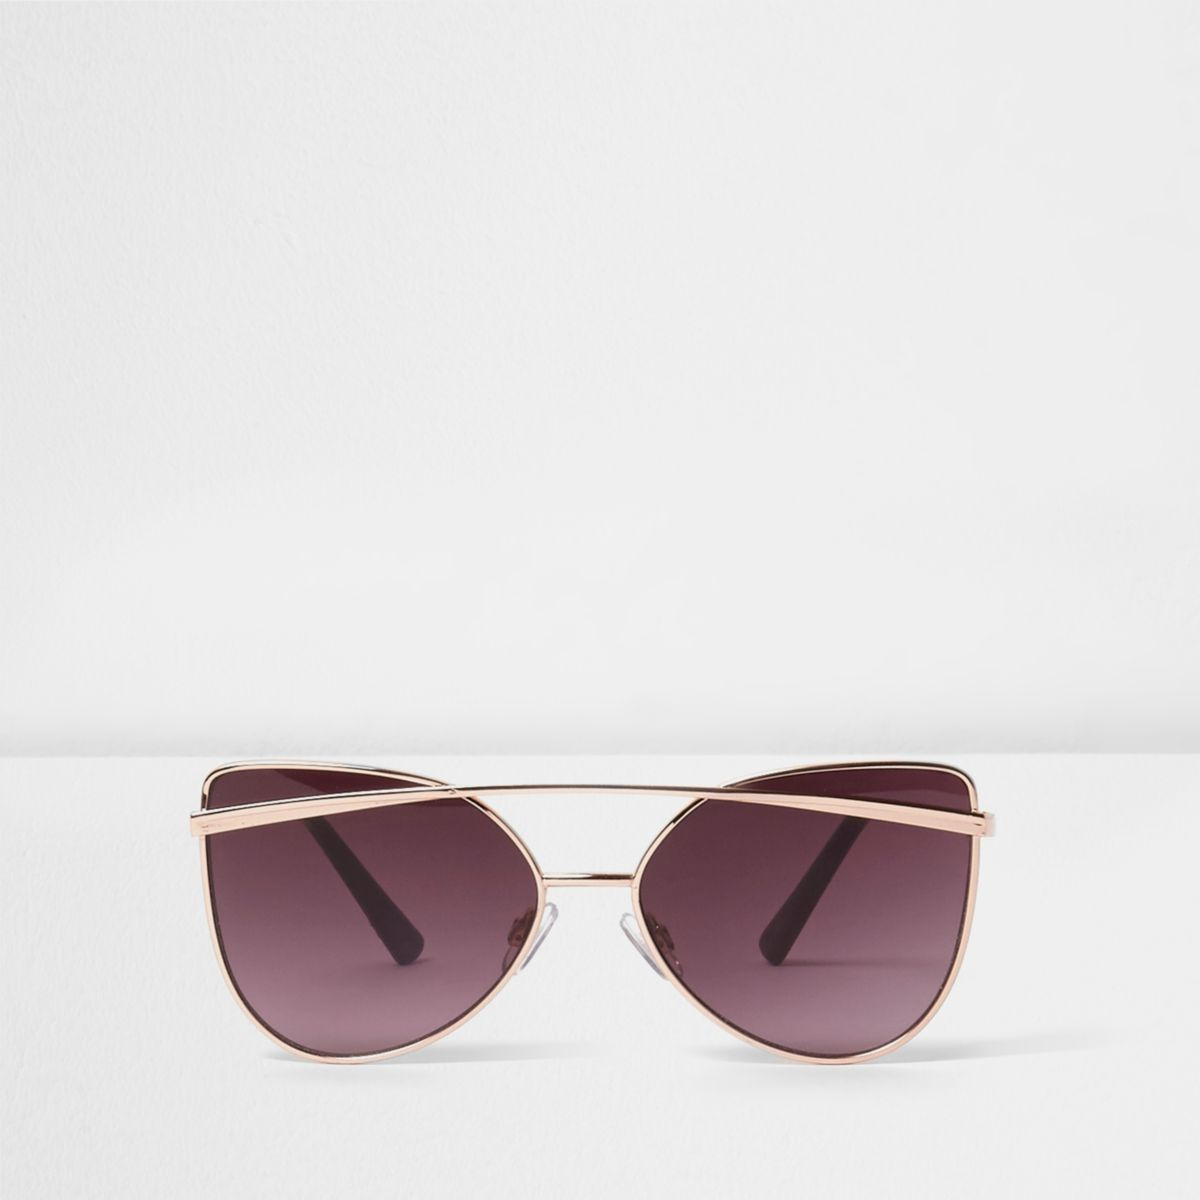 Girls rose gold tone brow bar sunglasses